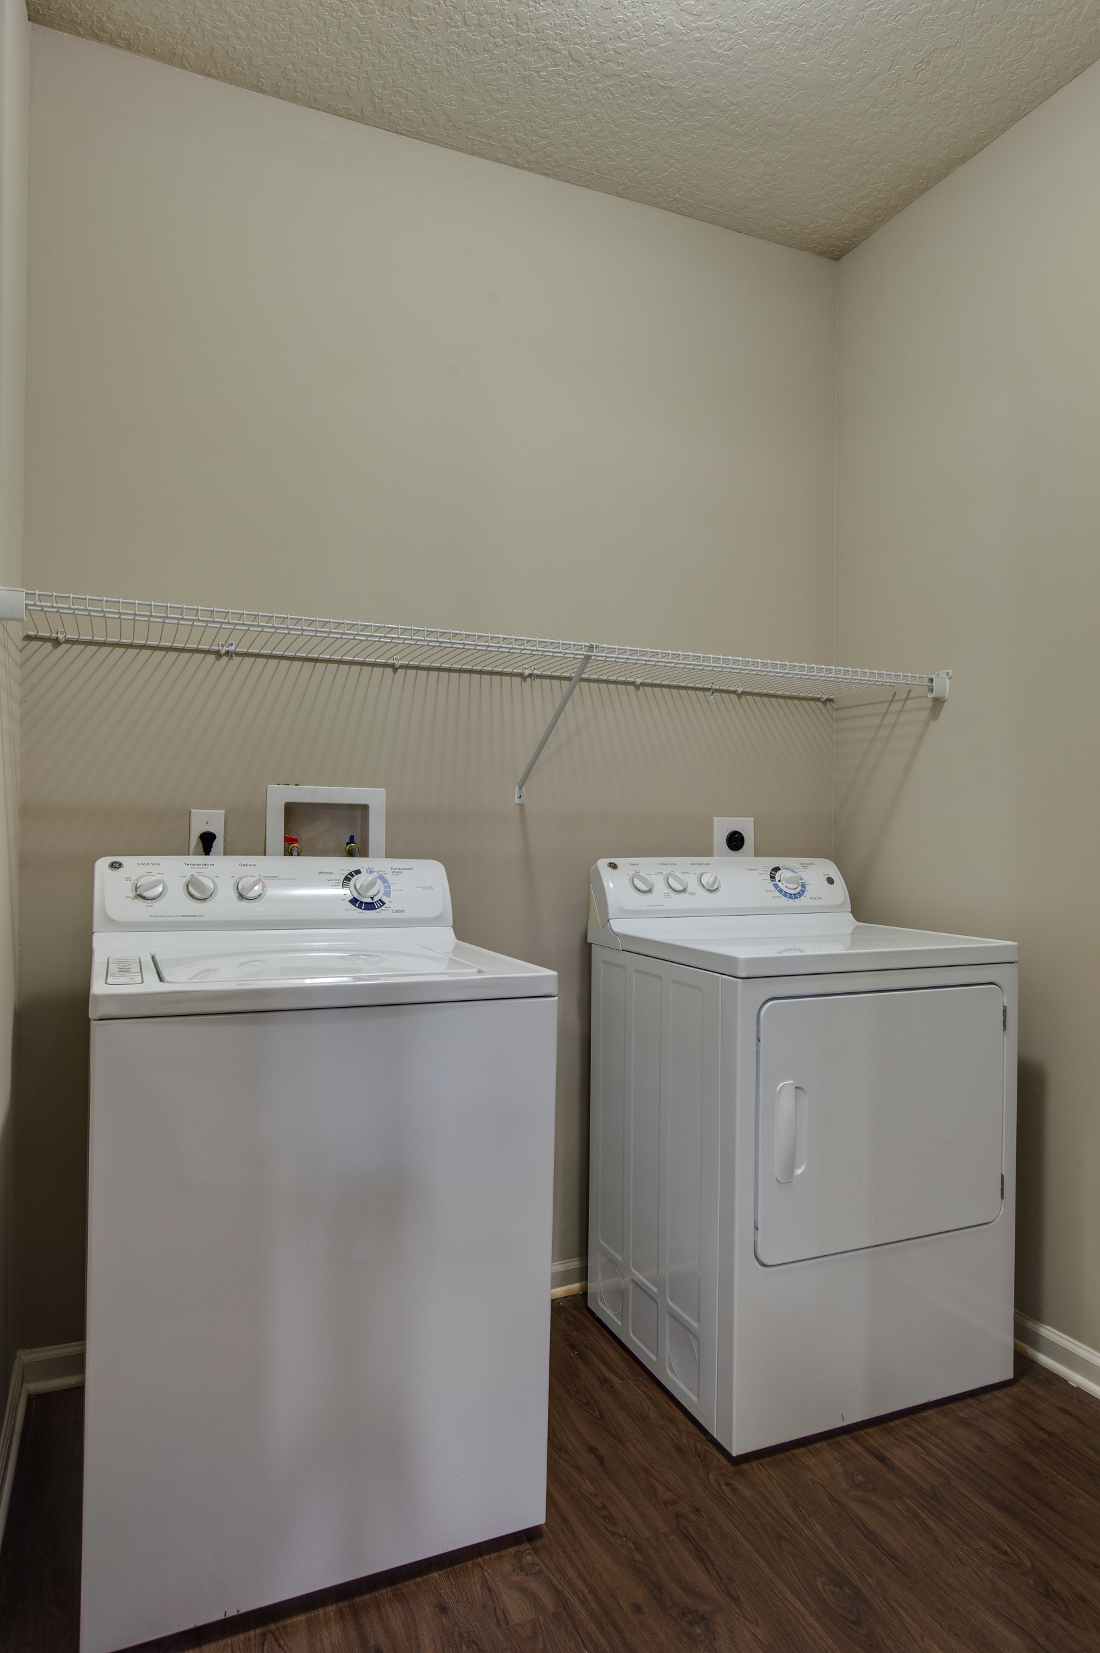 Washer and Dryer Area at Whitepalm Luxury Apartment Homes in Port Orange, FL